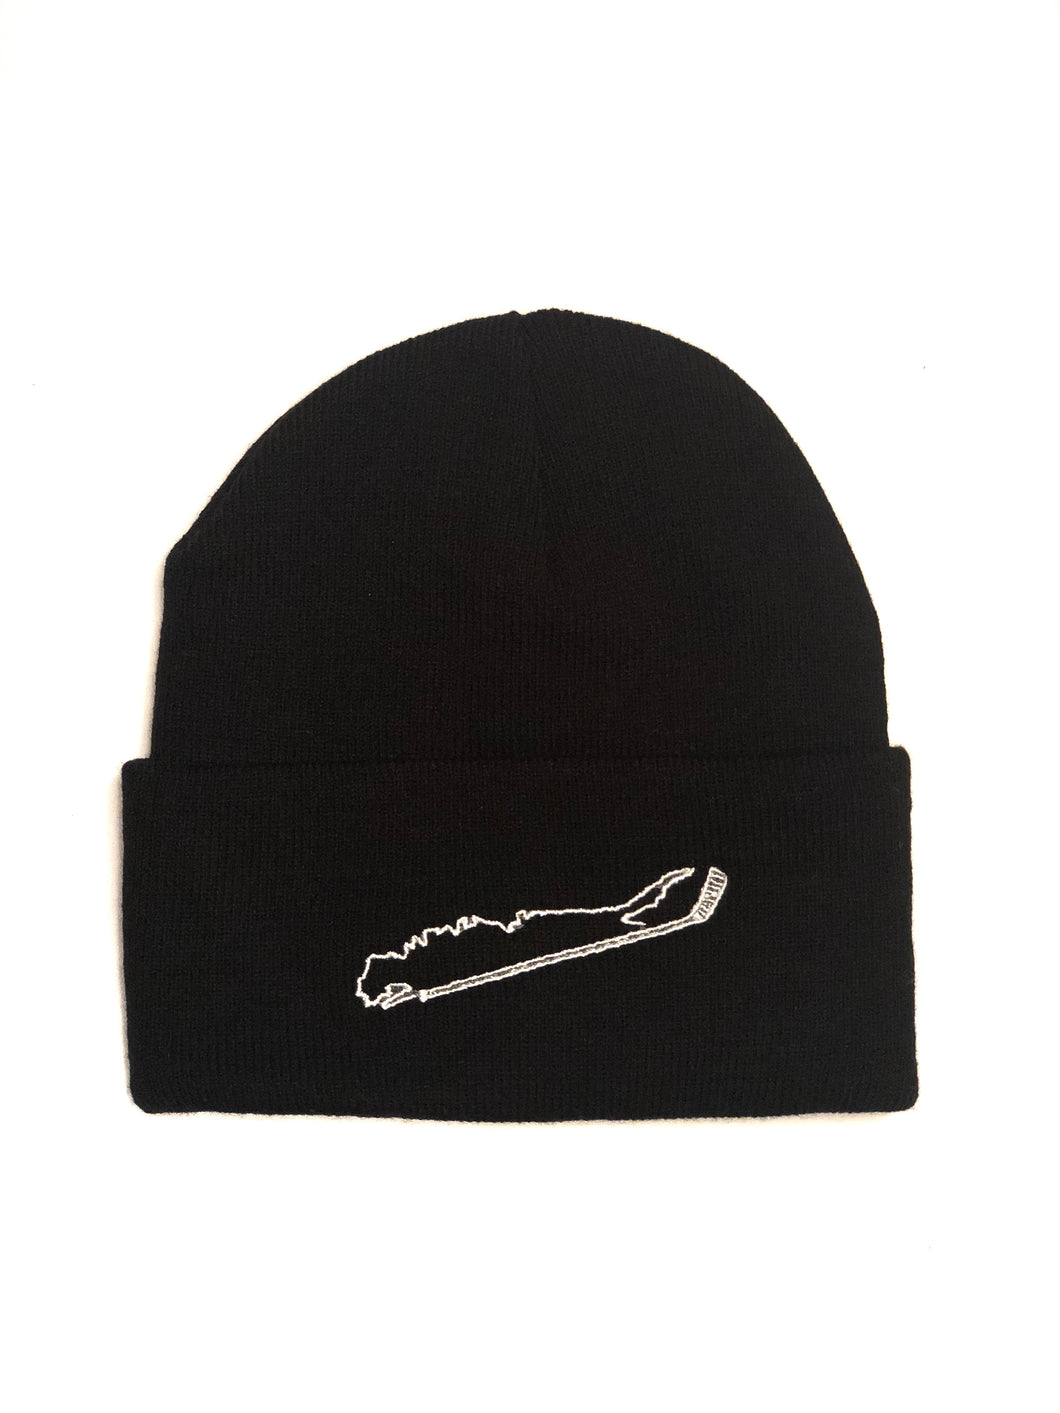 Long Island + Hockey Stick Knit Beanies